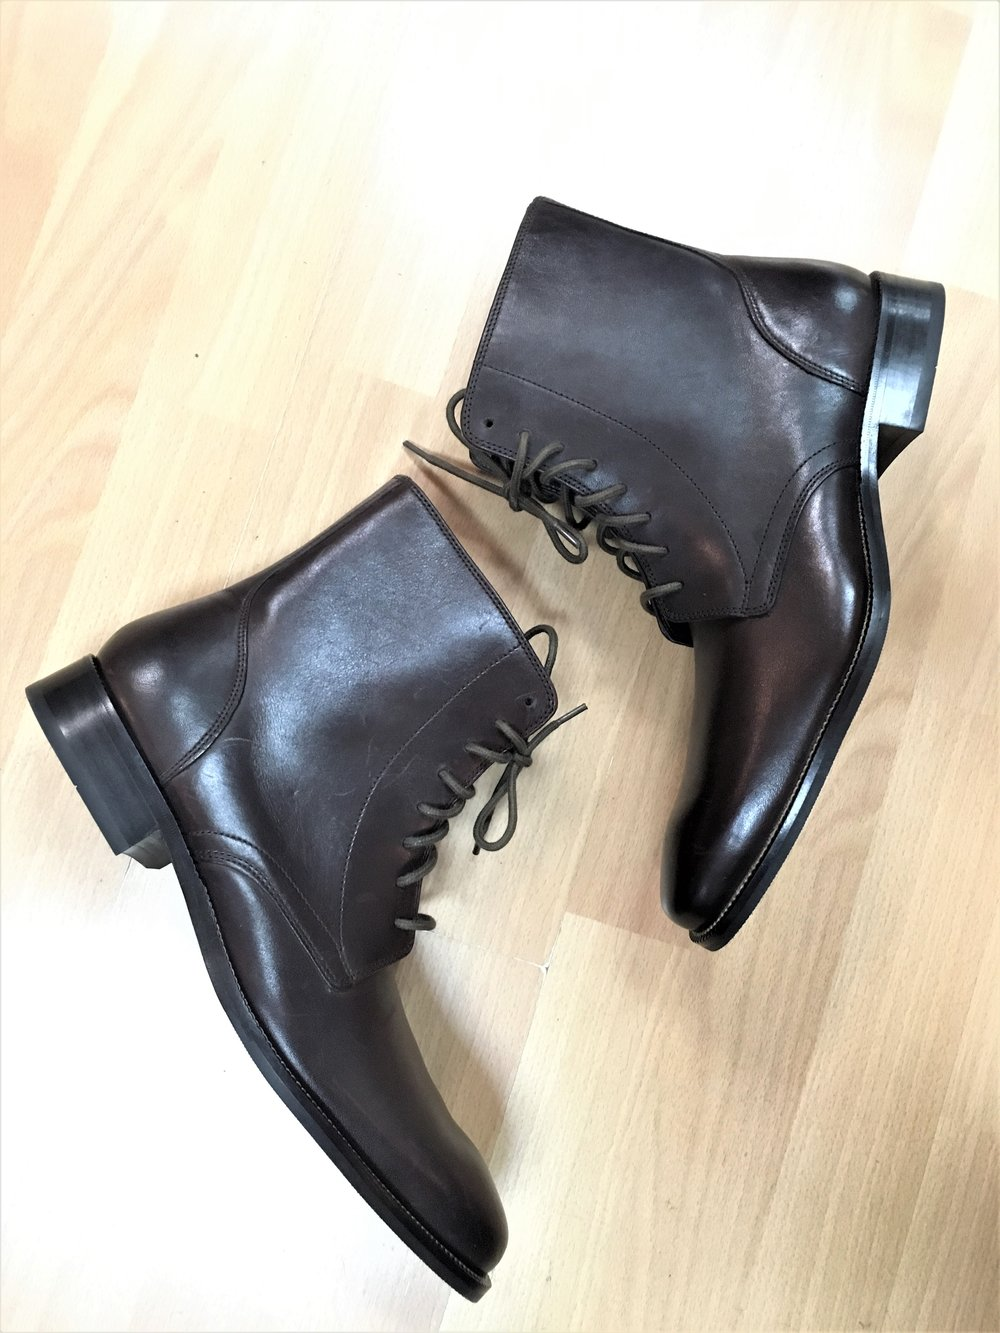 COLE HAAN - Men's Cole Haan brown leather boots, size 10. $88.00